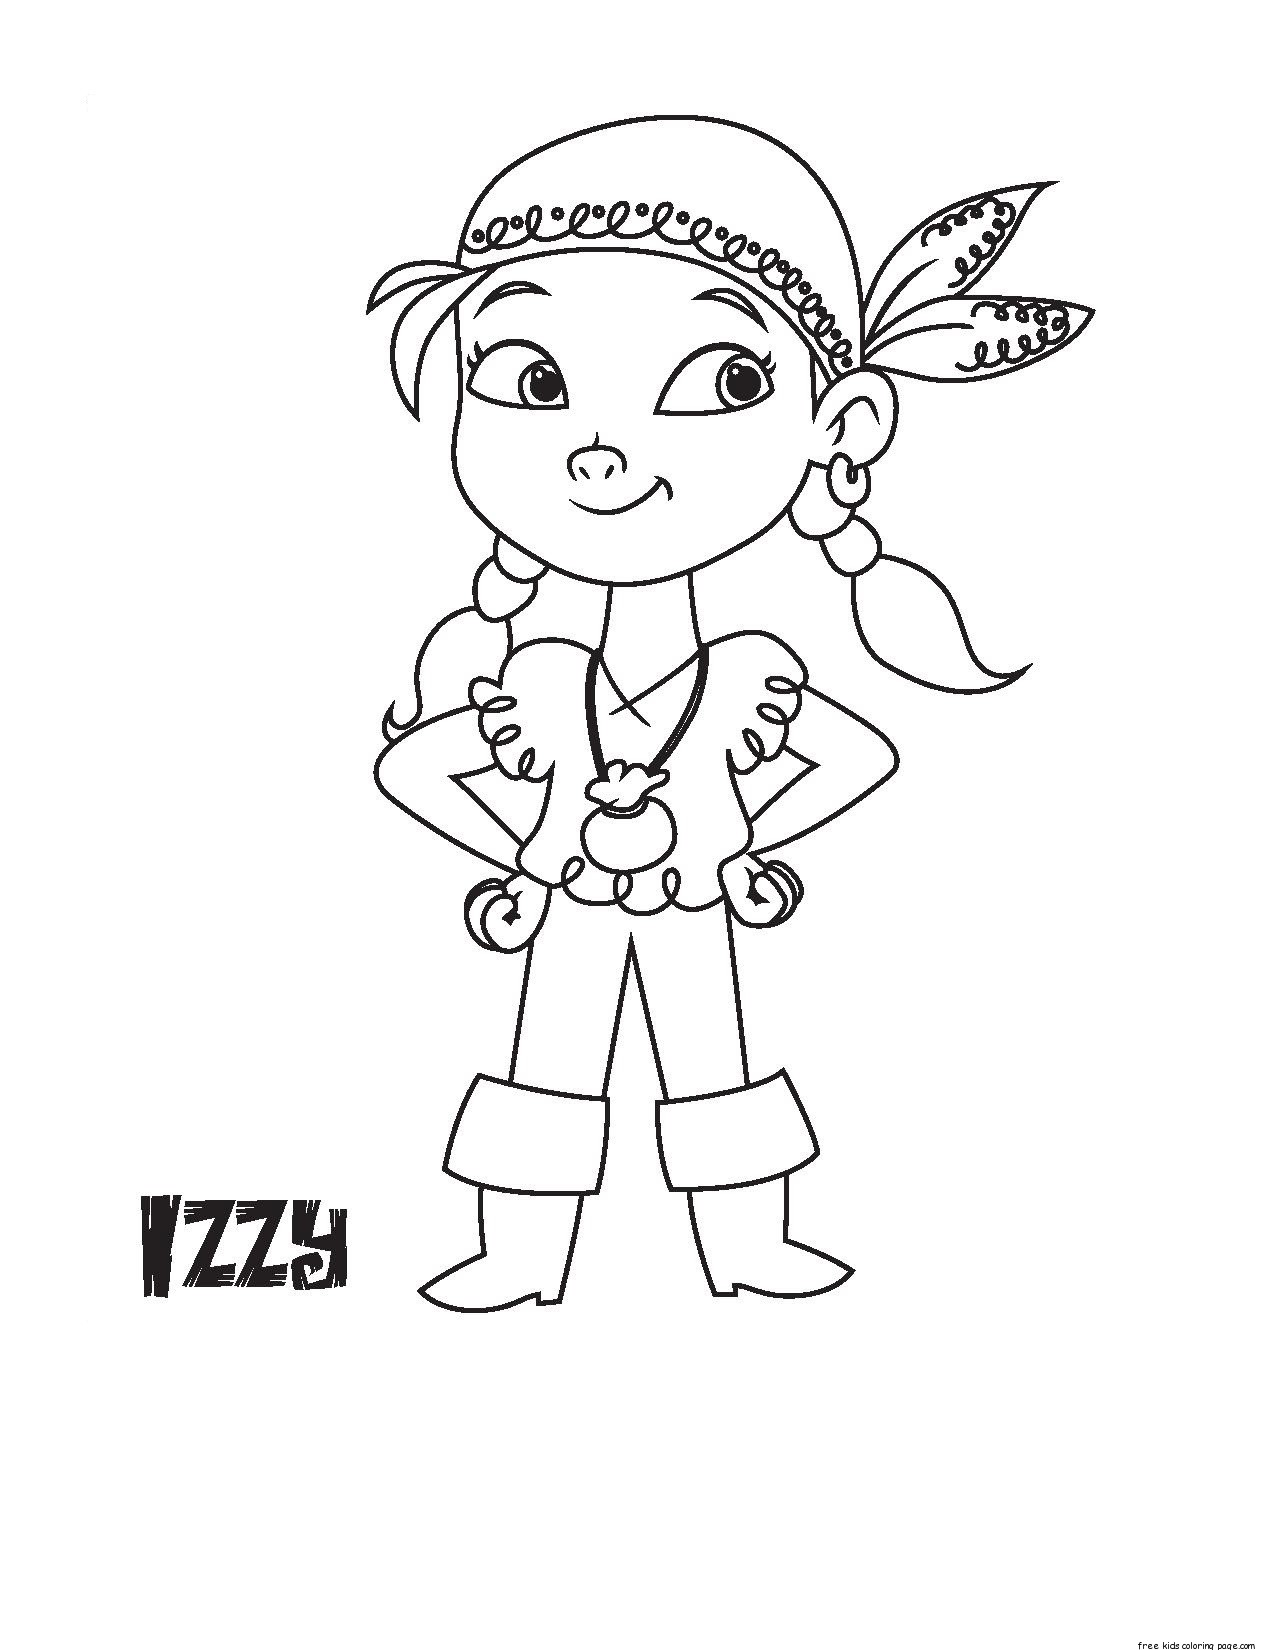 Printable Disney Junior Izzy Coloring Book Pages For